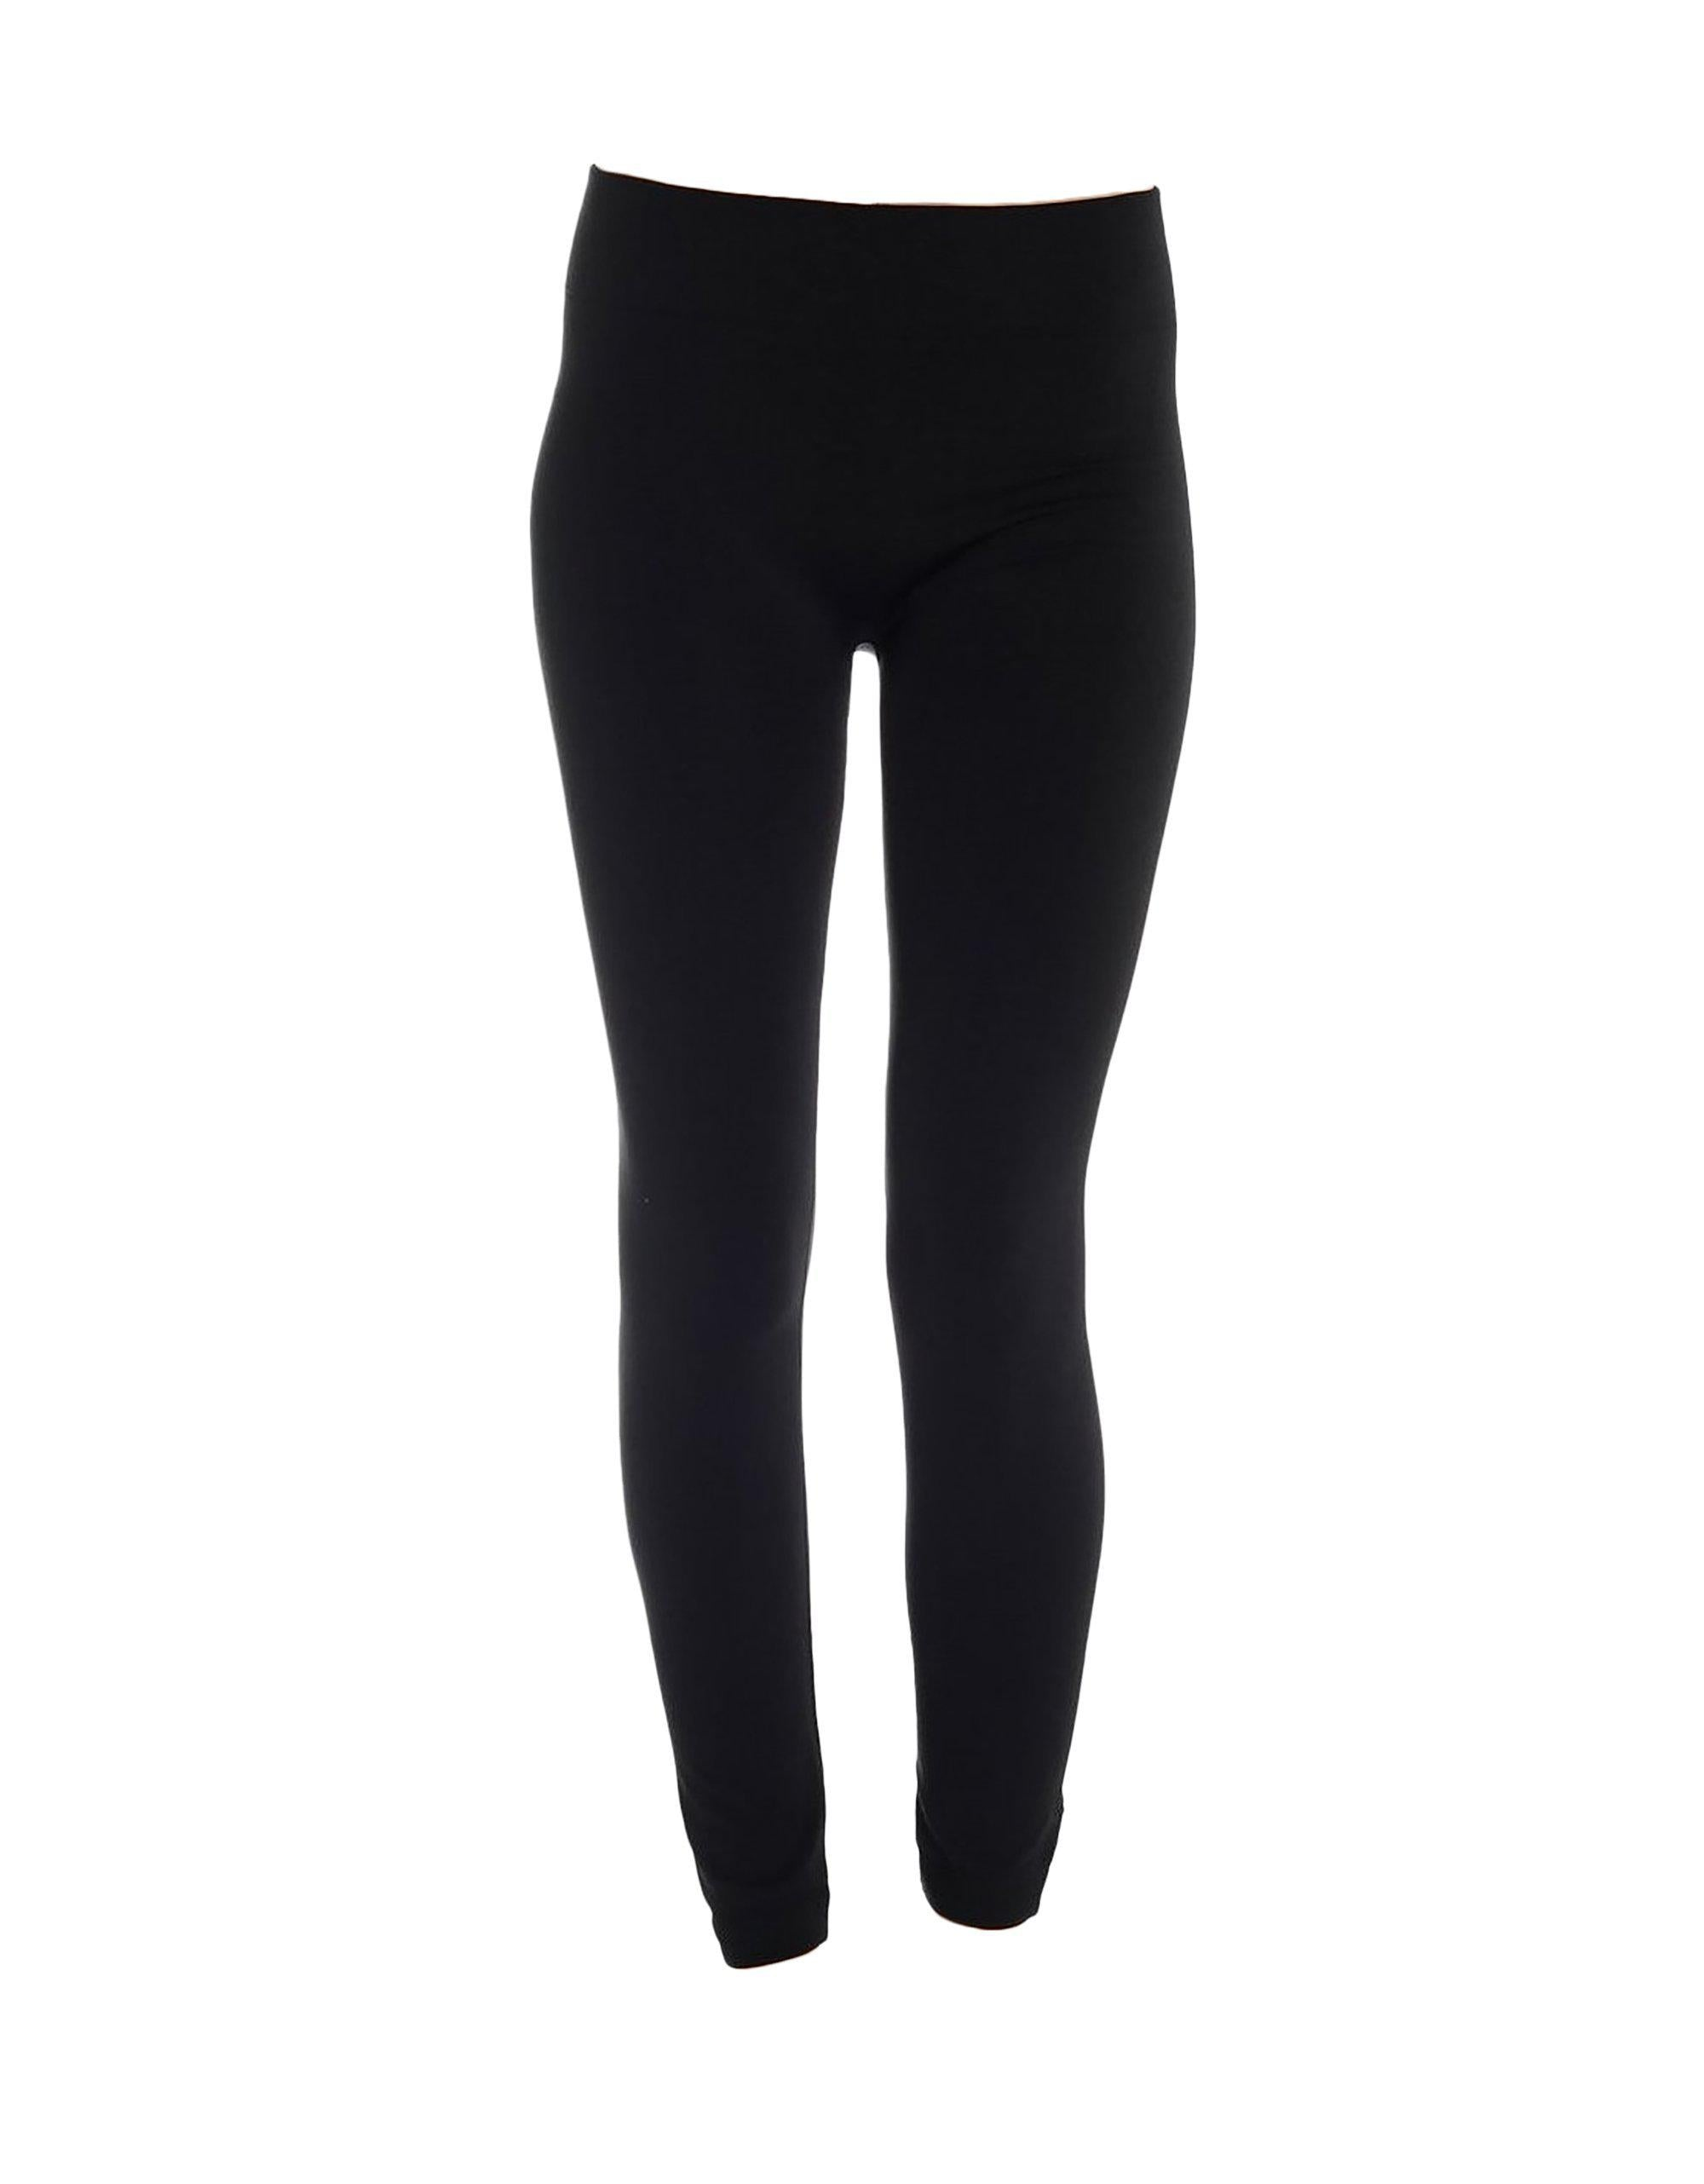 790e62ecec75f Shop Leggings, Yoga Pants and Fleece Lined Leggings | Emprella